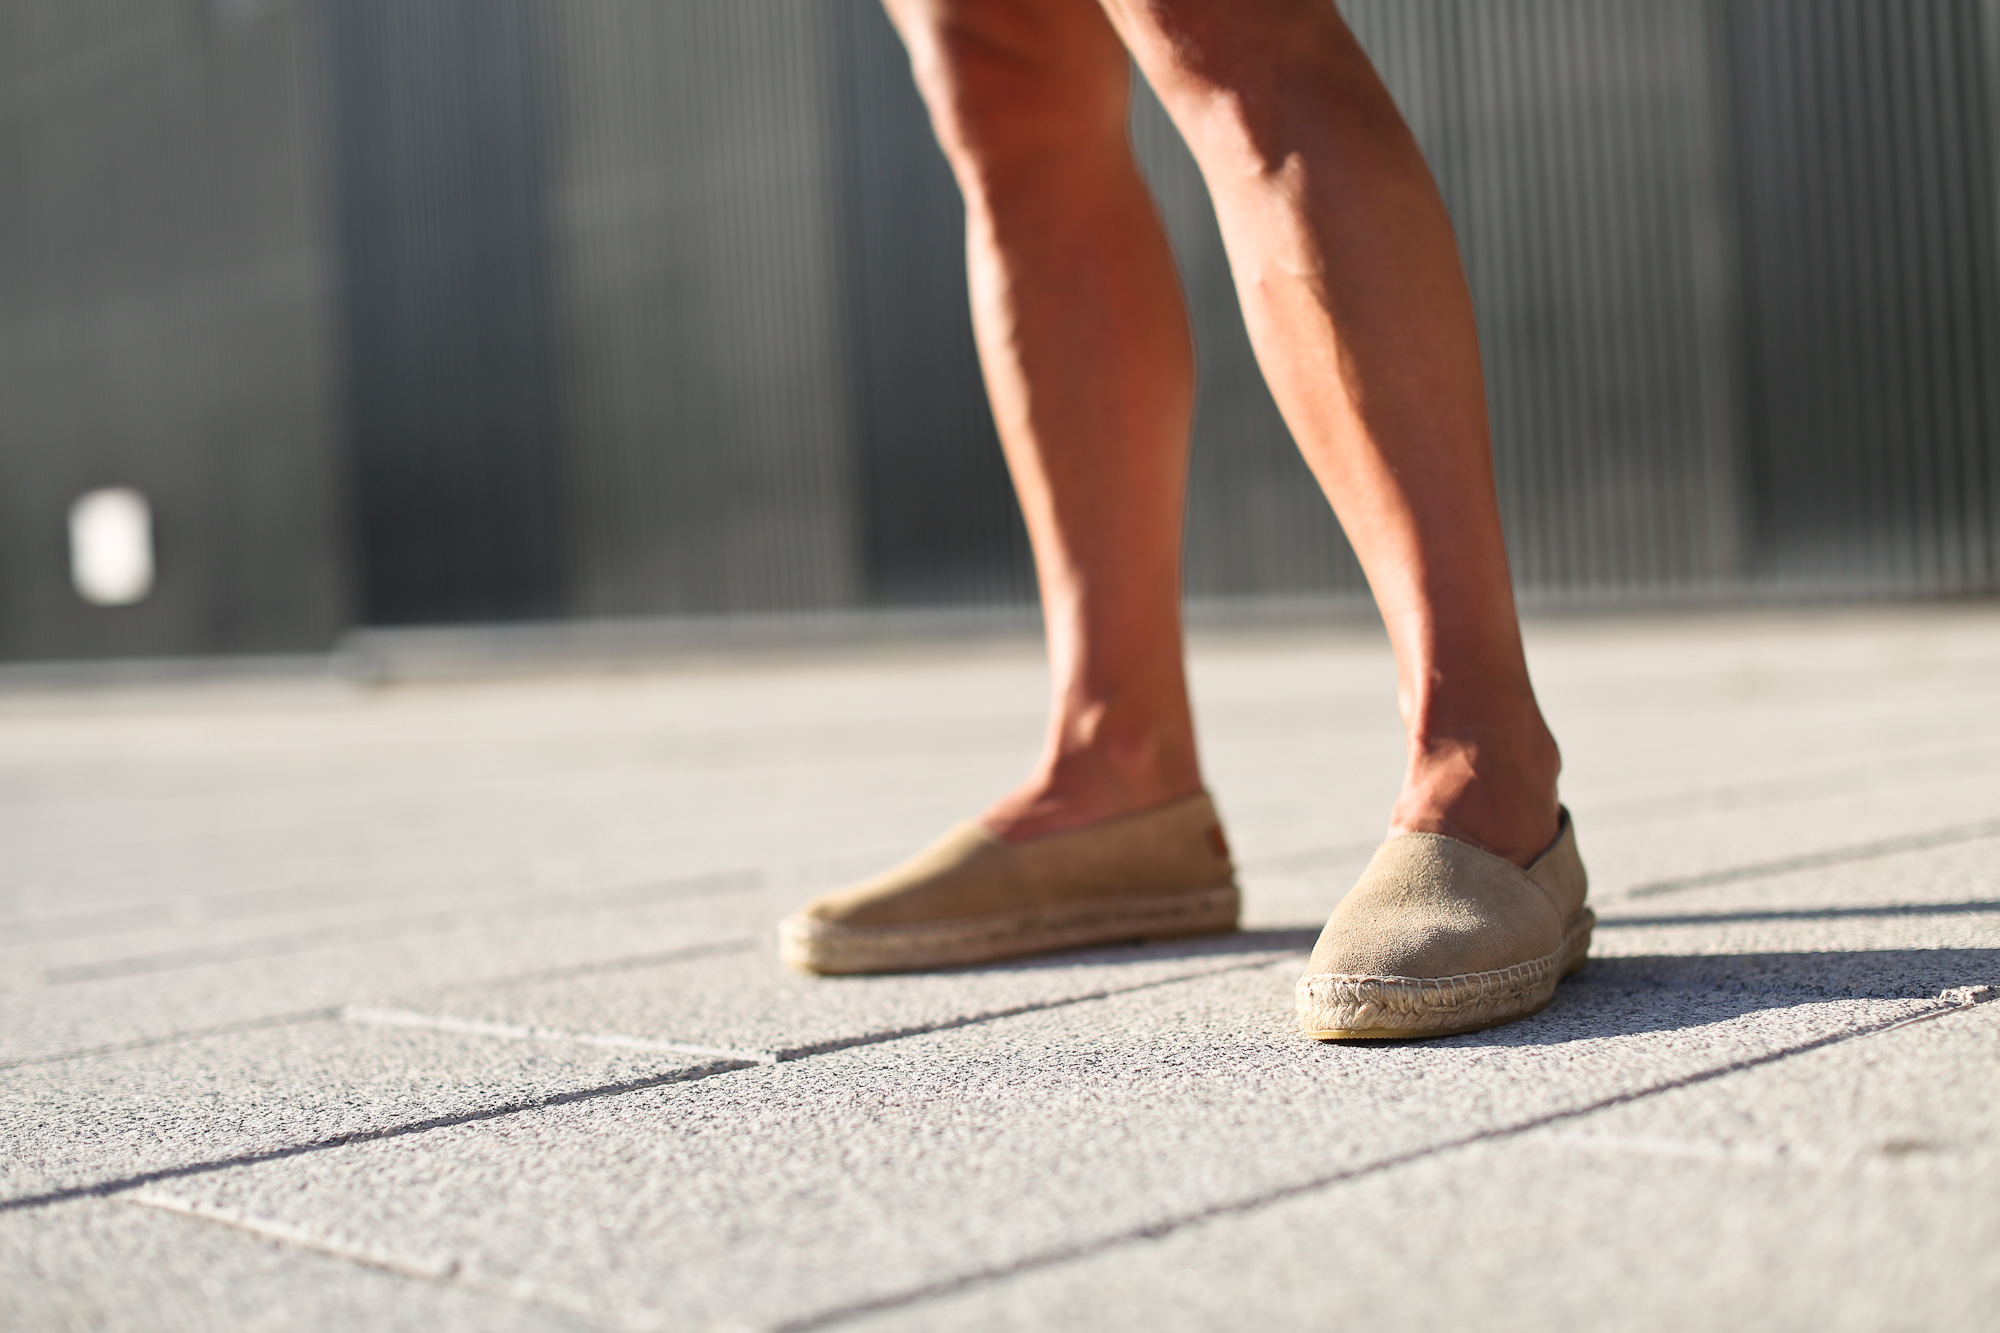 Clochet_streetstyle_suede_leather_spadrilles